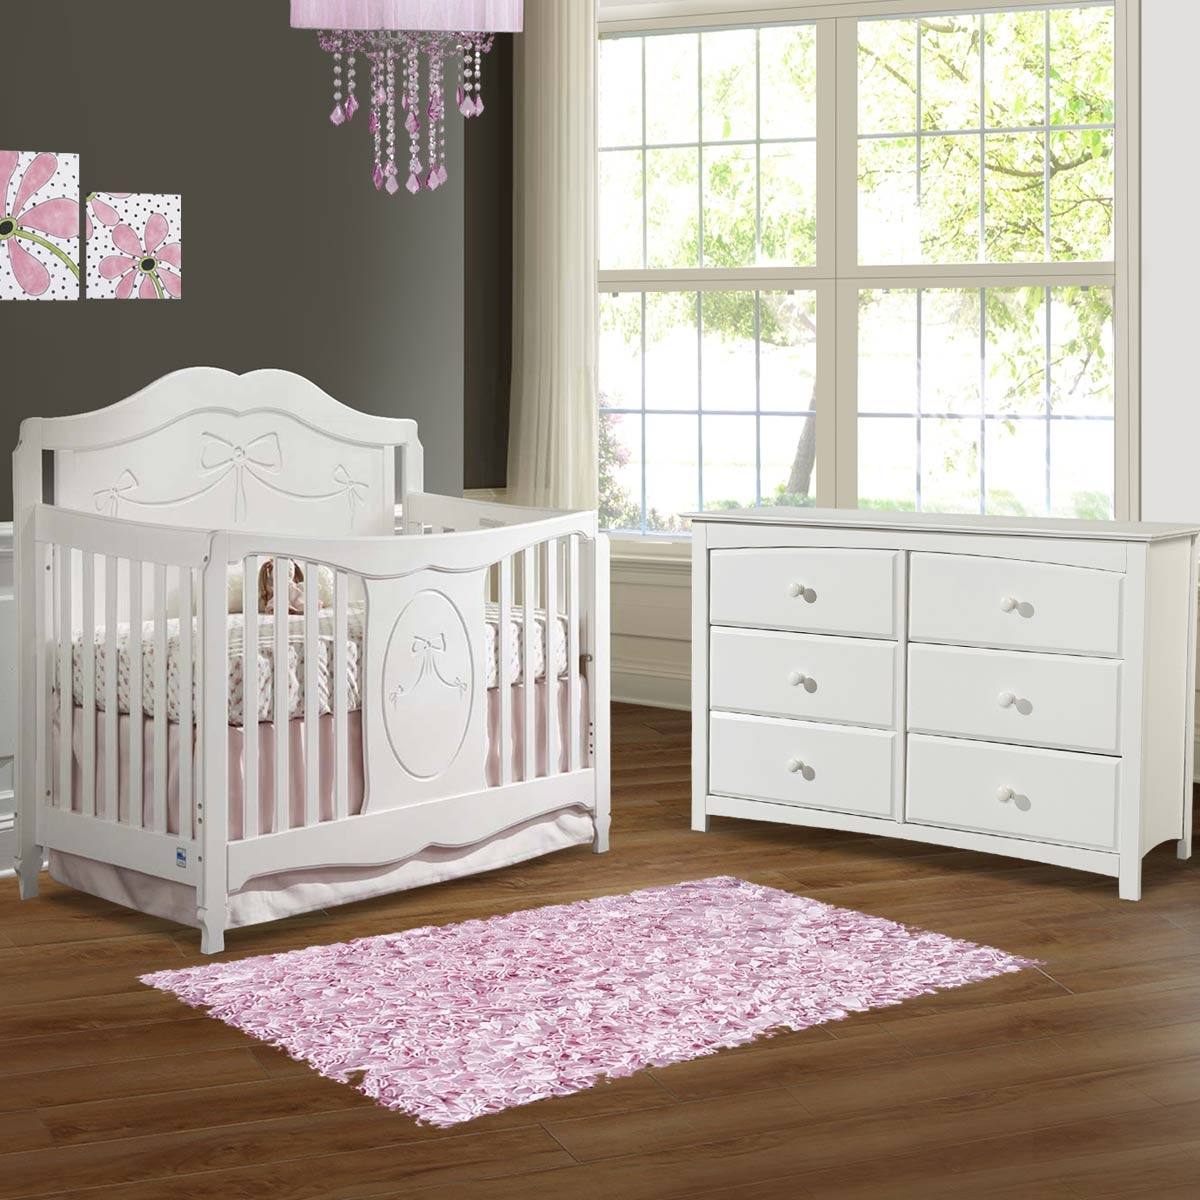 crib to princess toddler house delta amazing cribs children wood size design tent s white baby wooden convertible us amazoncom nursery carriage r girl full in bed of toys ding disney